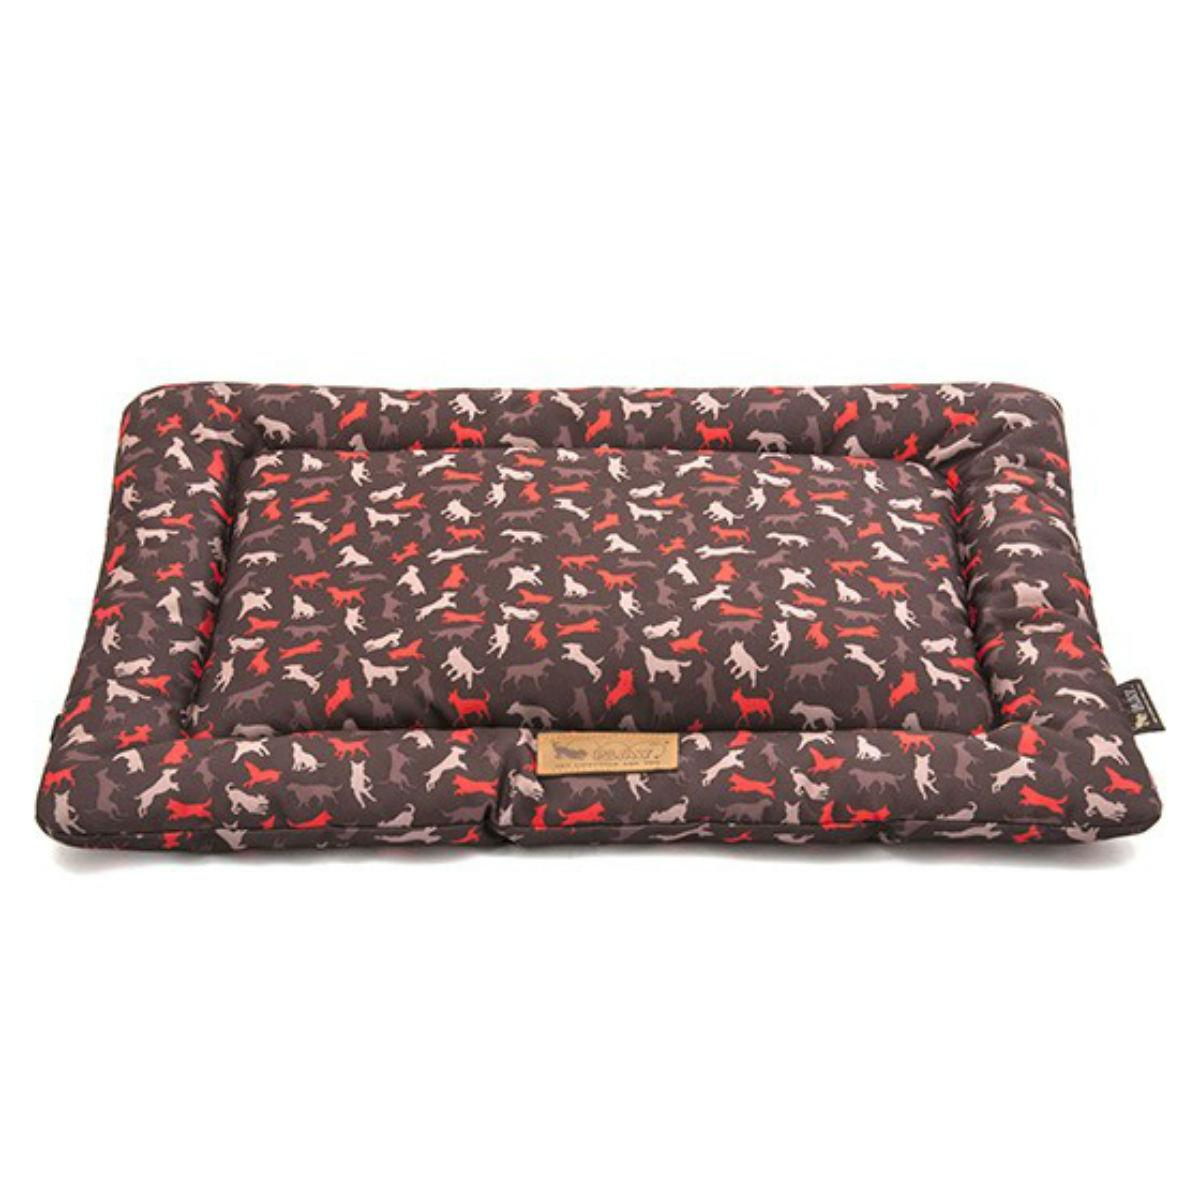 Scout and About Outdoor Chill Pad Dog Mat - Mocha